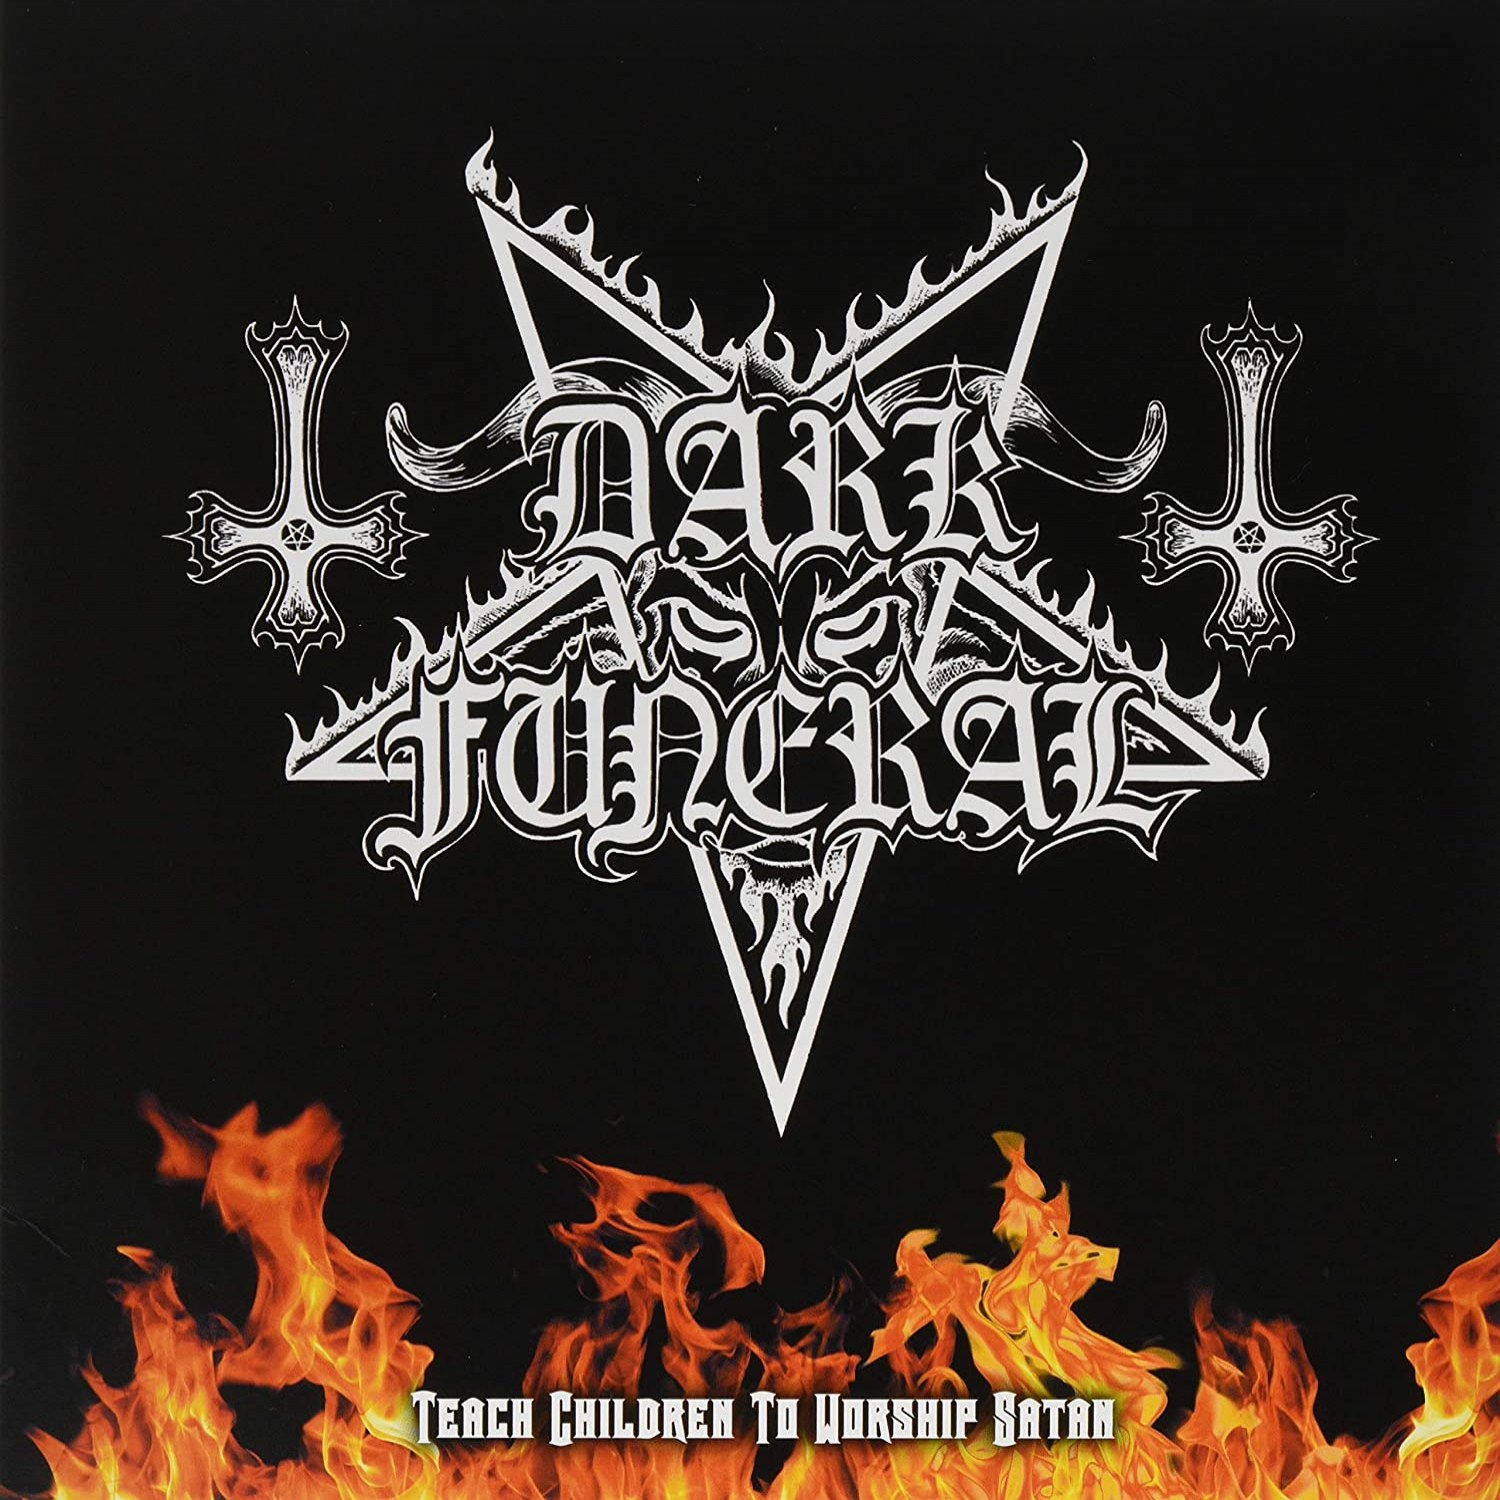 Review for Dark Funeral - Teach Children to Worship Satan